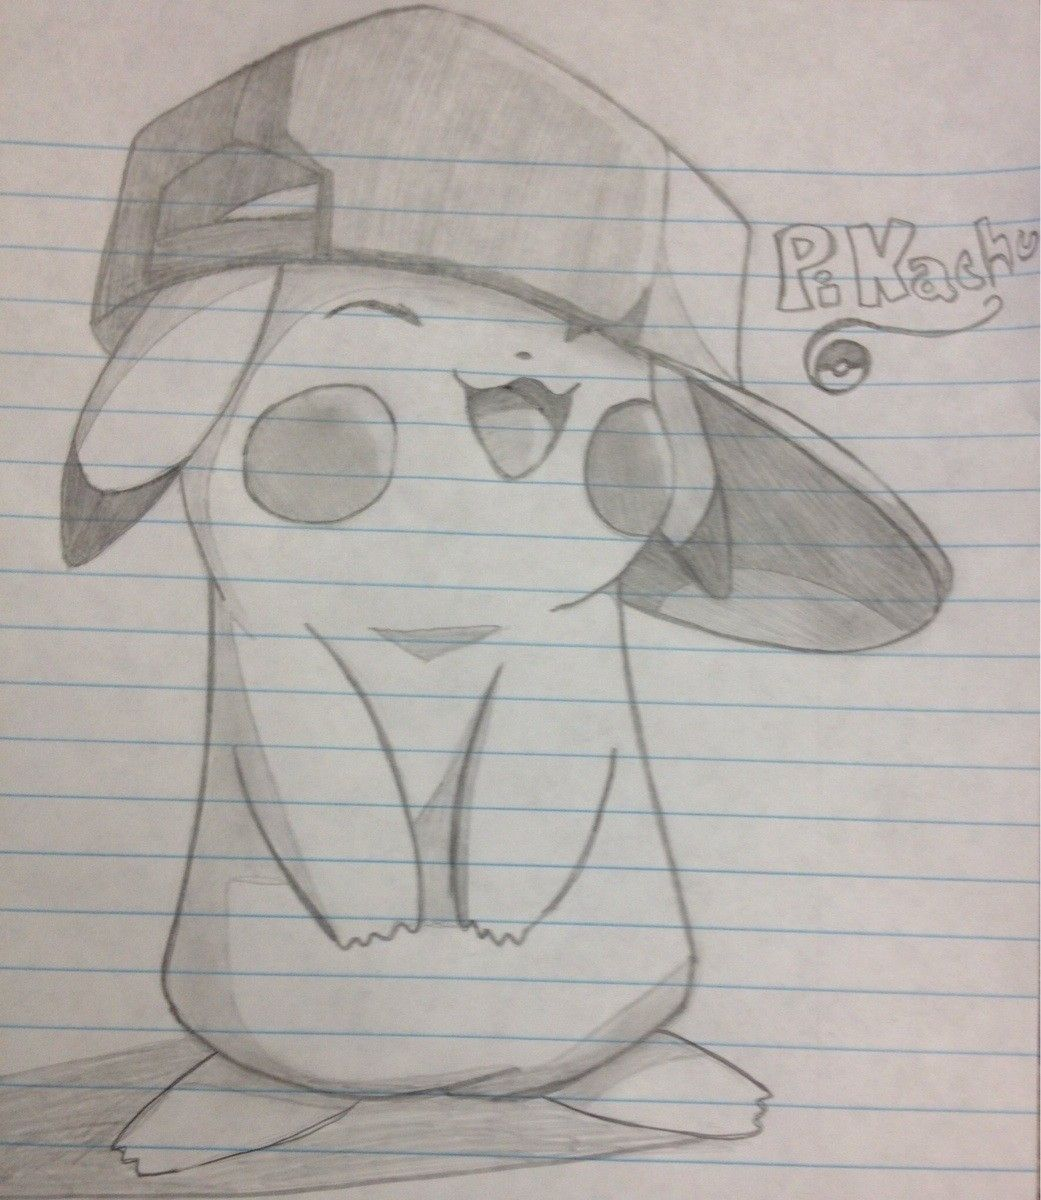 cute pikachu to draw when bored drawing ideas